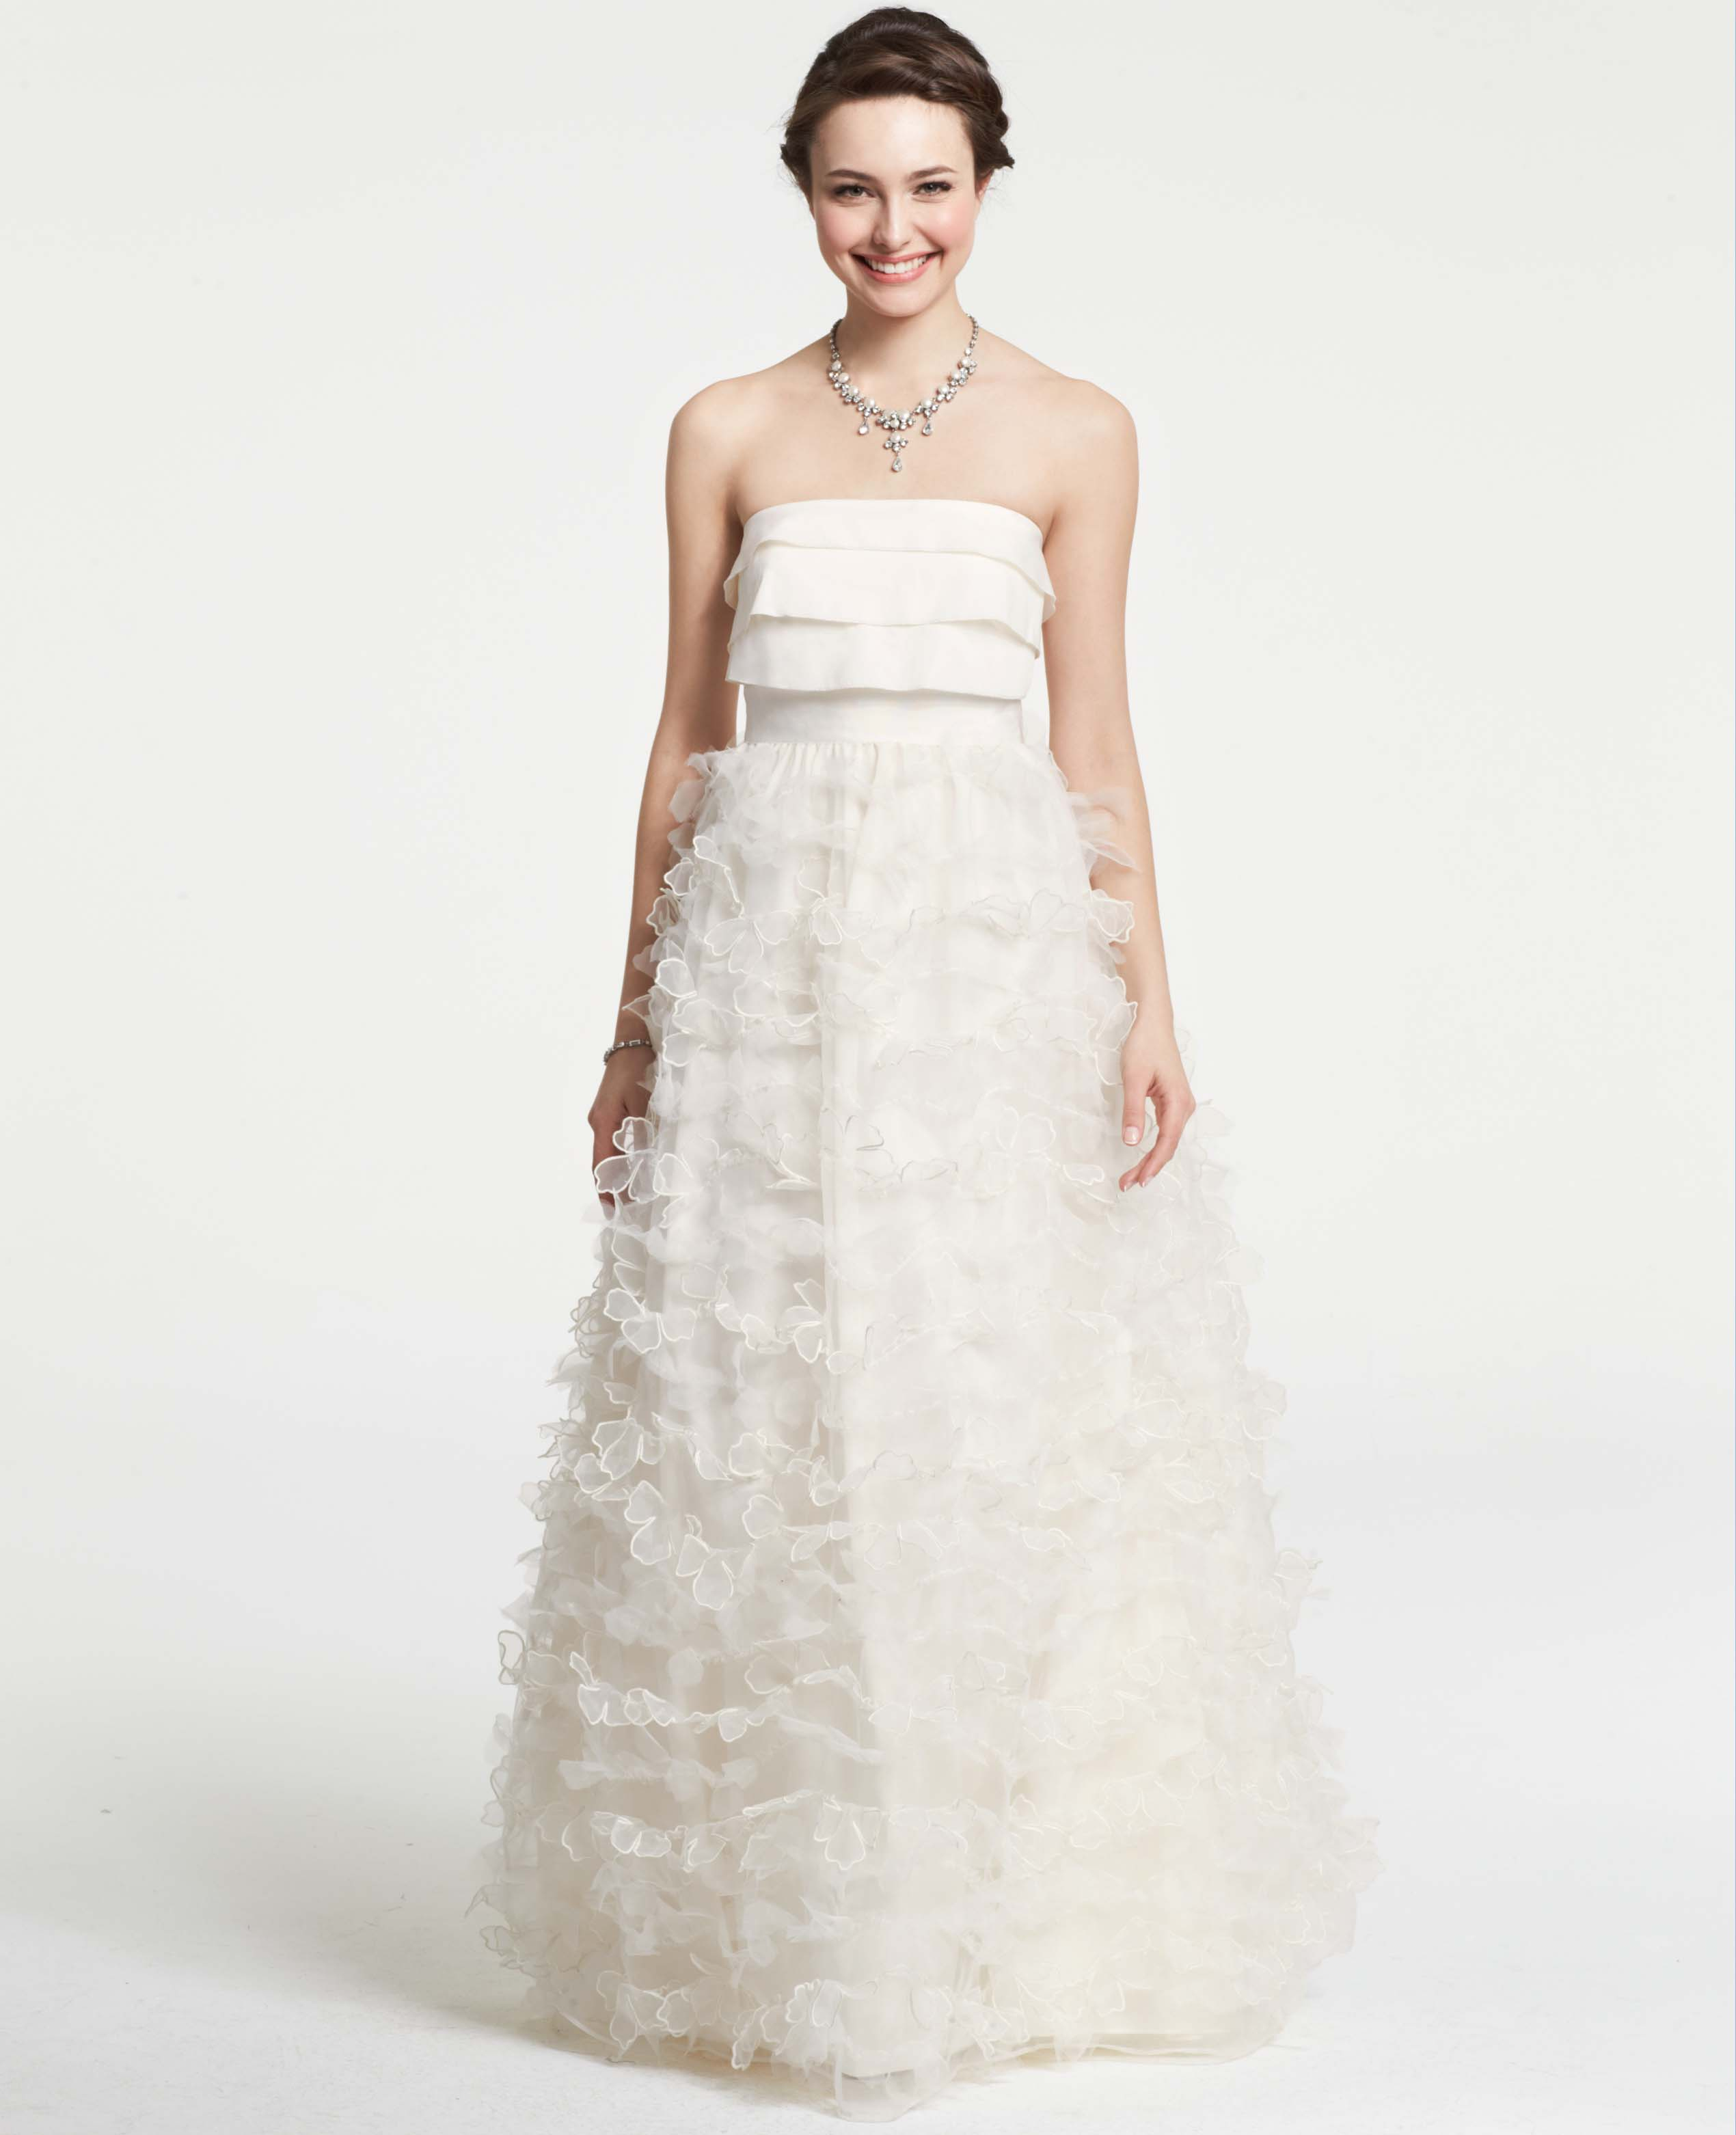 Ann taylor petaled strapless wedding dress in white for Wedding dresses ann taylor